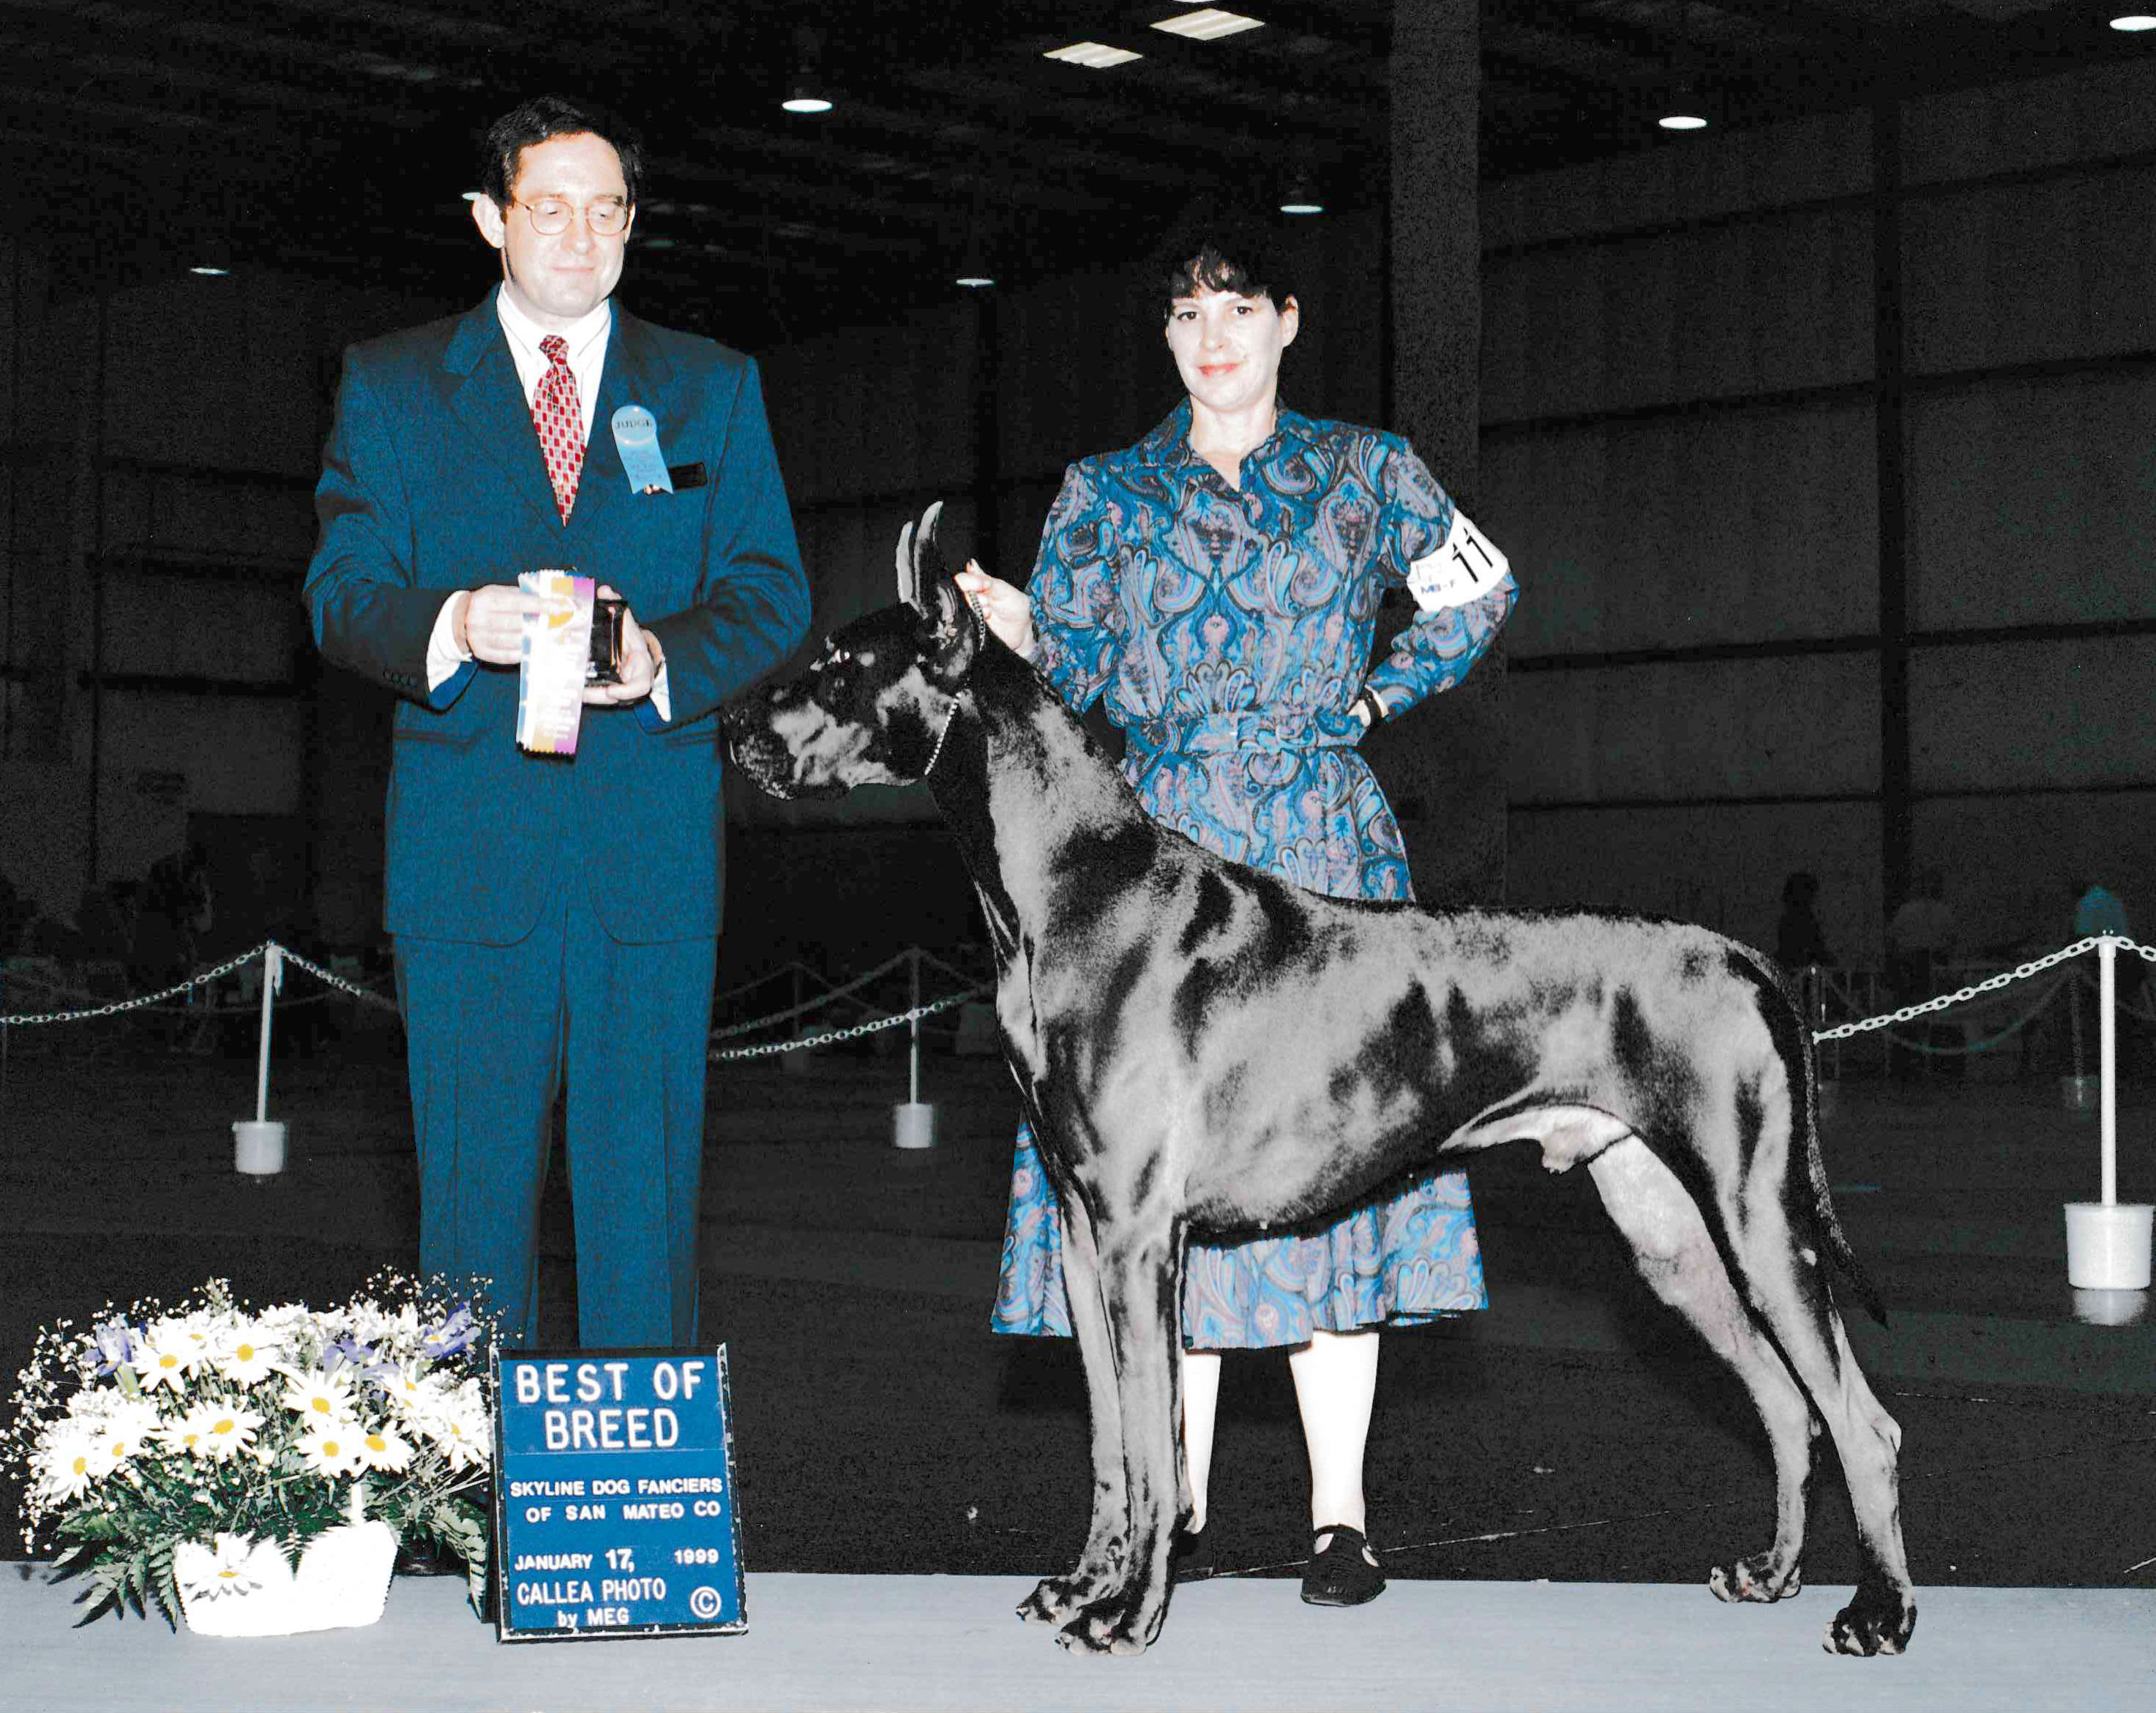 Bandit- Blue Great Dane Champion best of breed